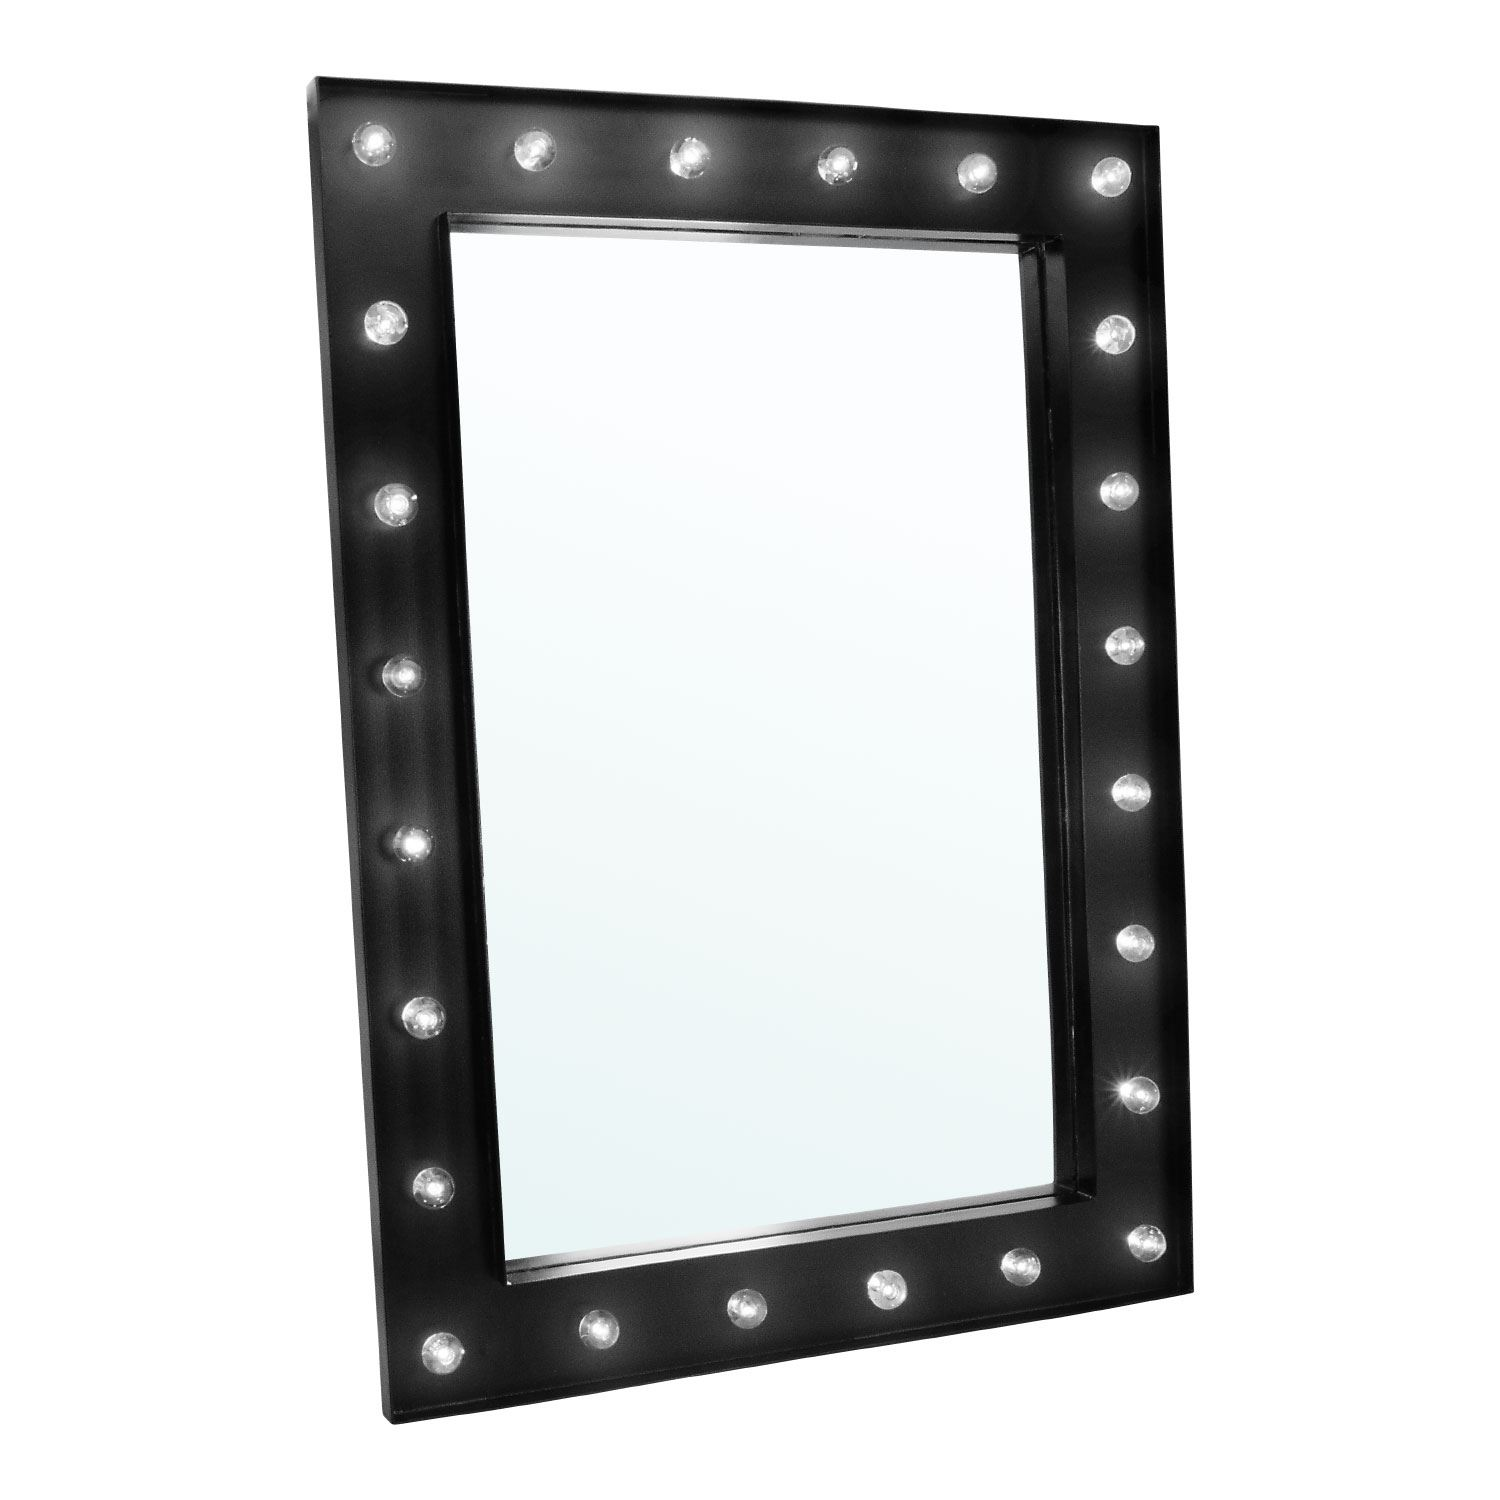 large vanity mirror with light hollywood makeup mirror wall mounted lighted new ebay. Black Bedroom Furniture Sets. Home Design Ideas